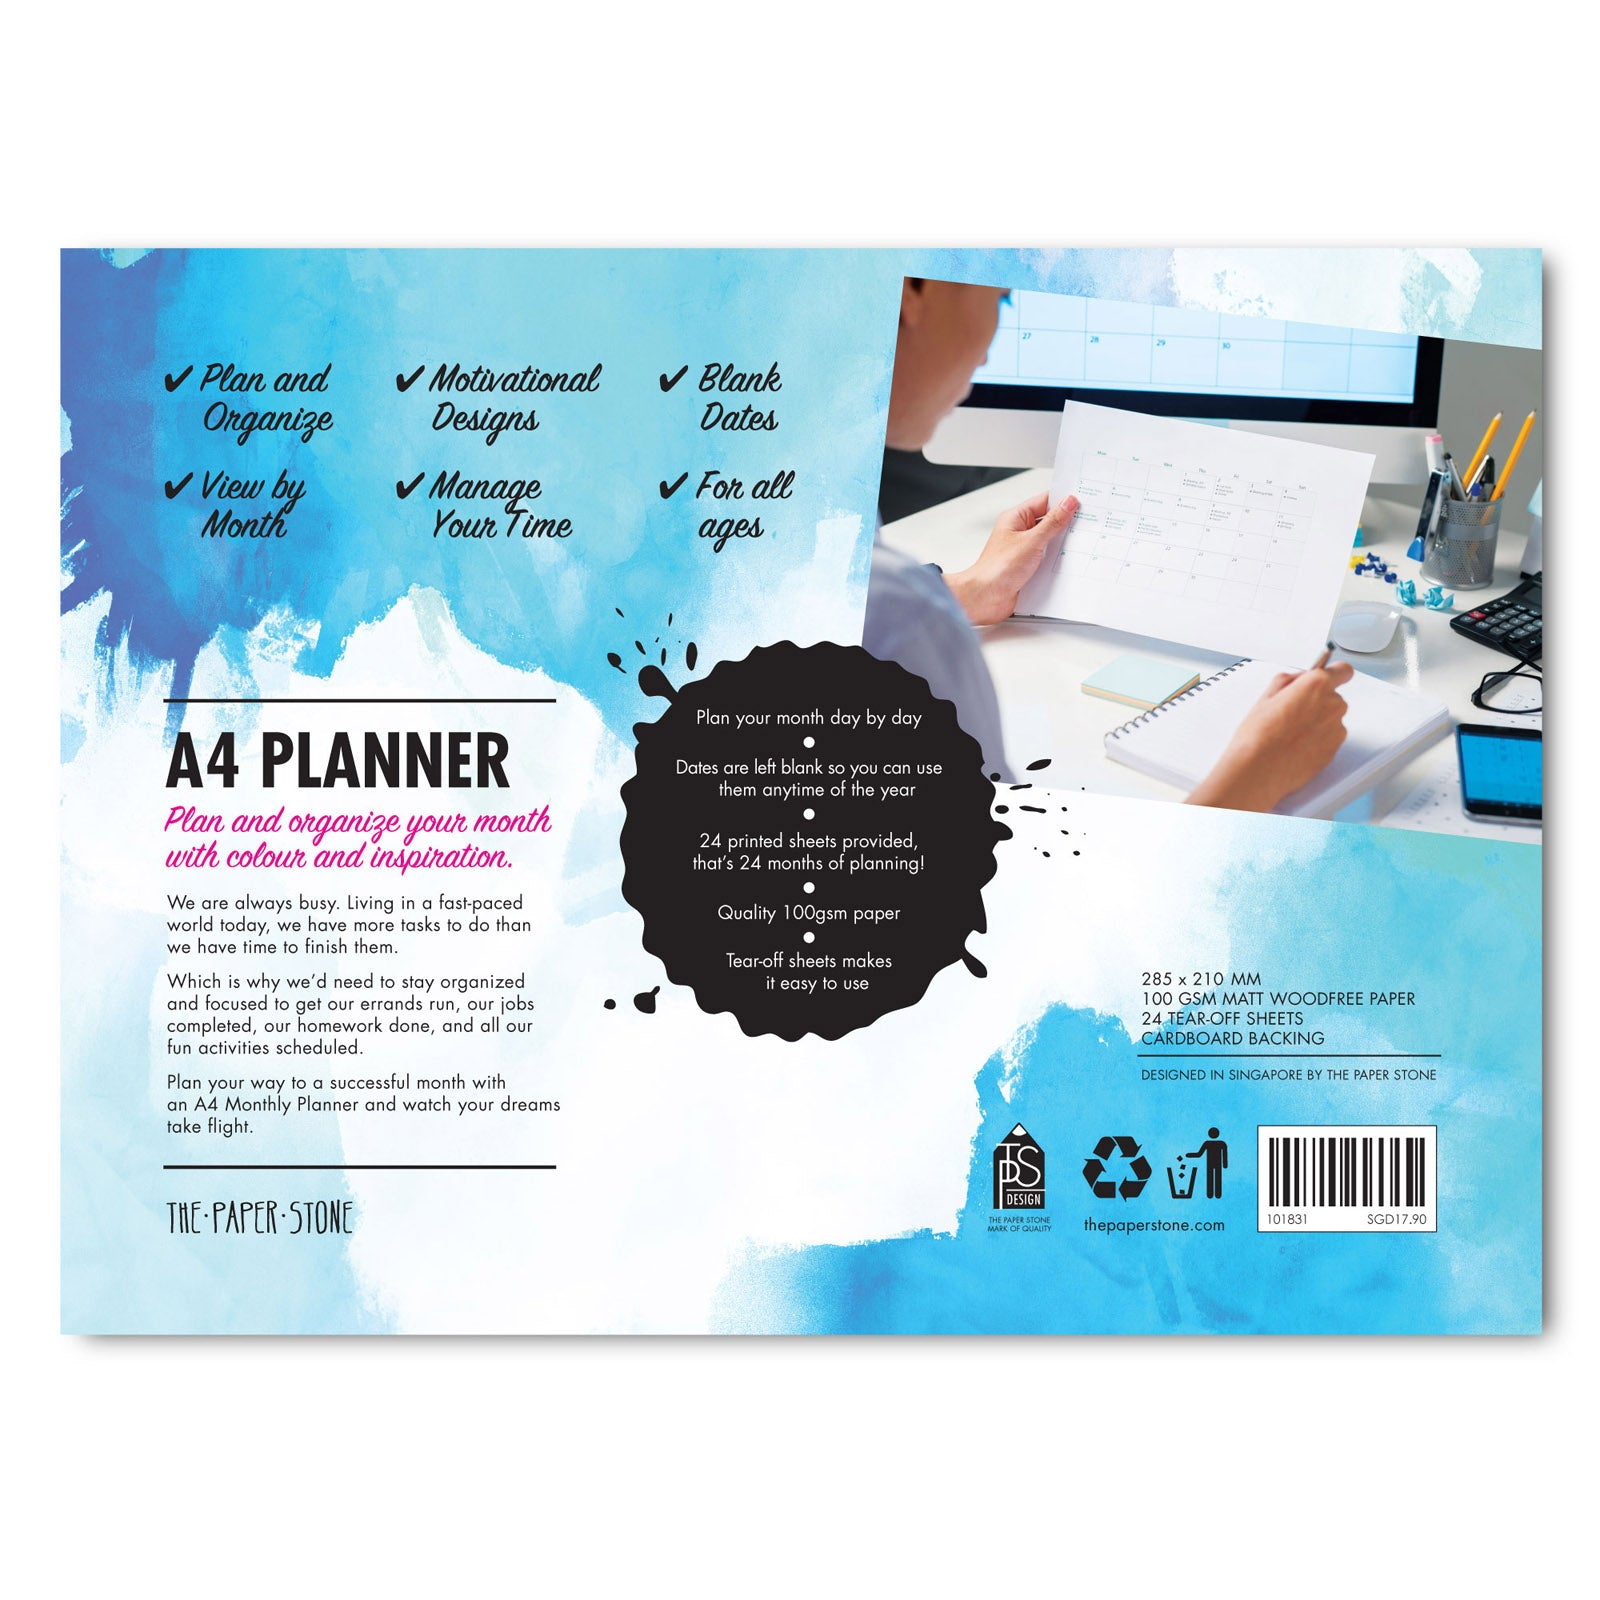 A4 Planner - Hello Beautiful Day